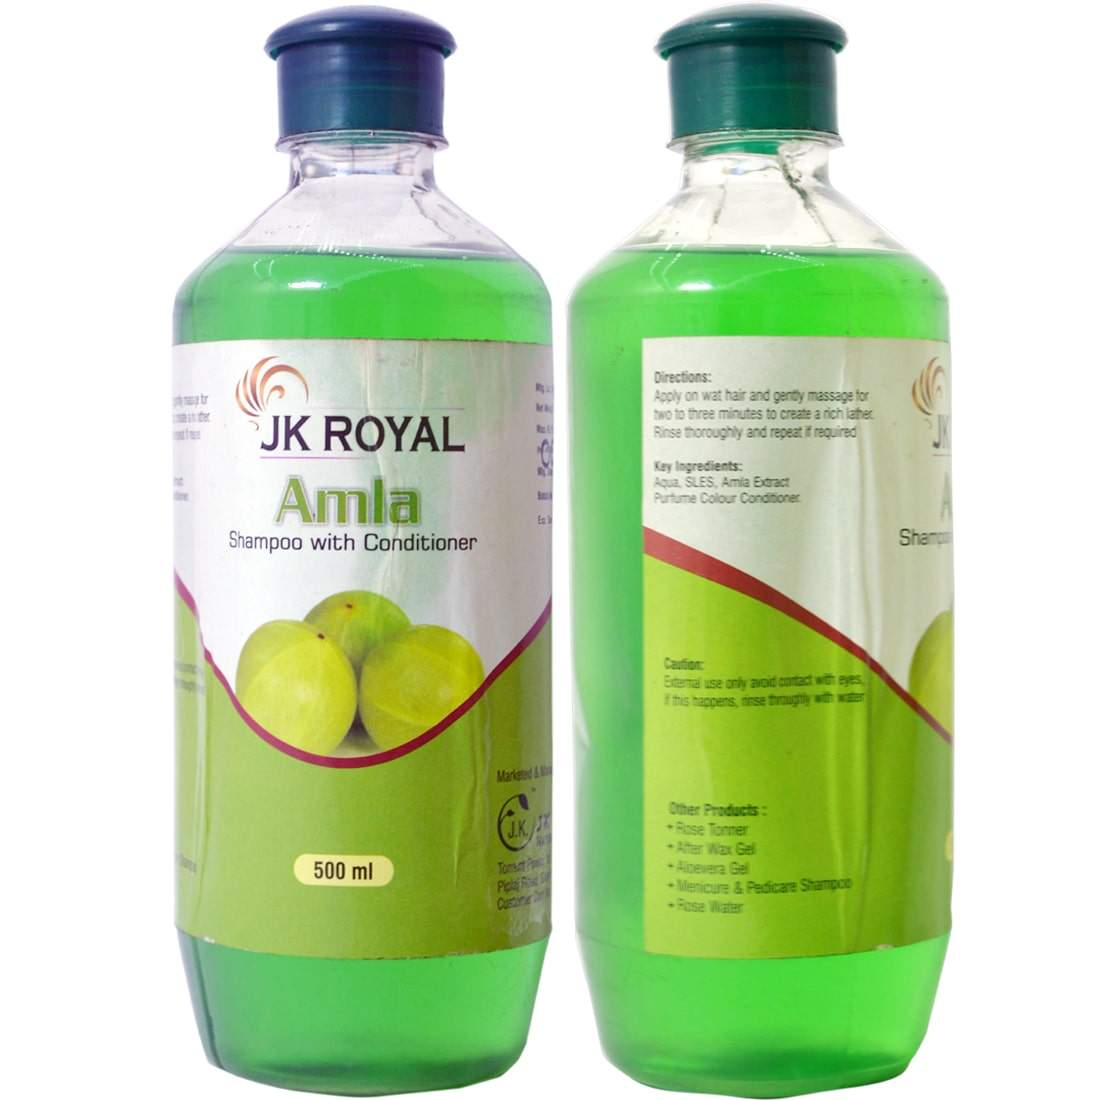 JK Royal Amla Shampoo with Conditioner for Hair 500 ml